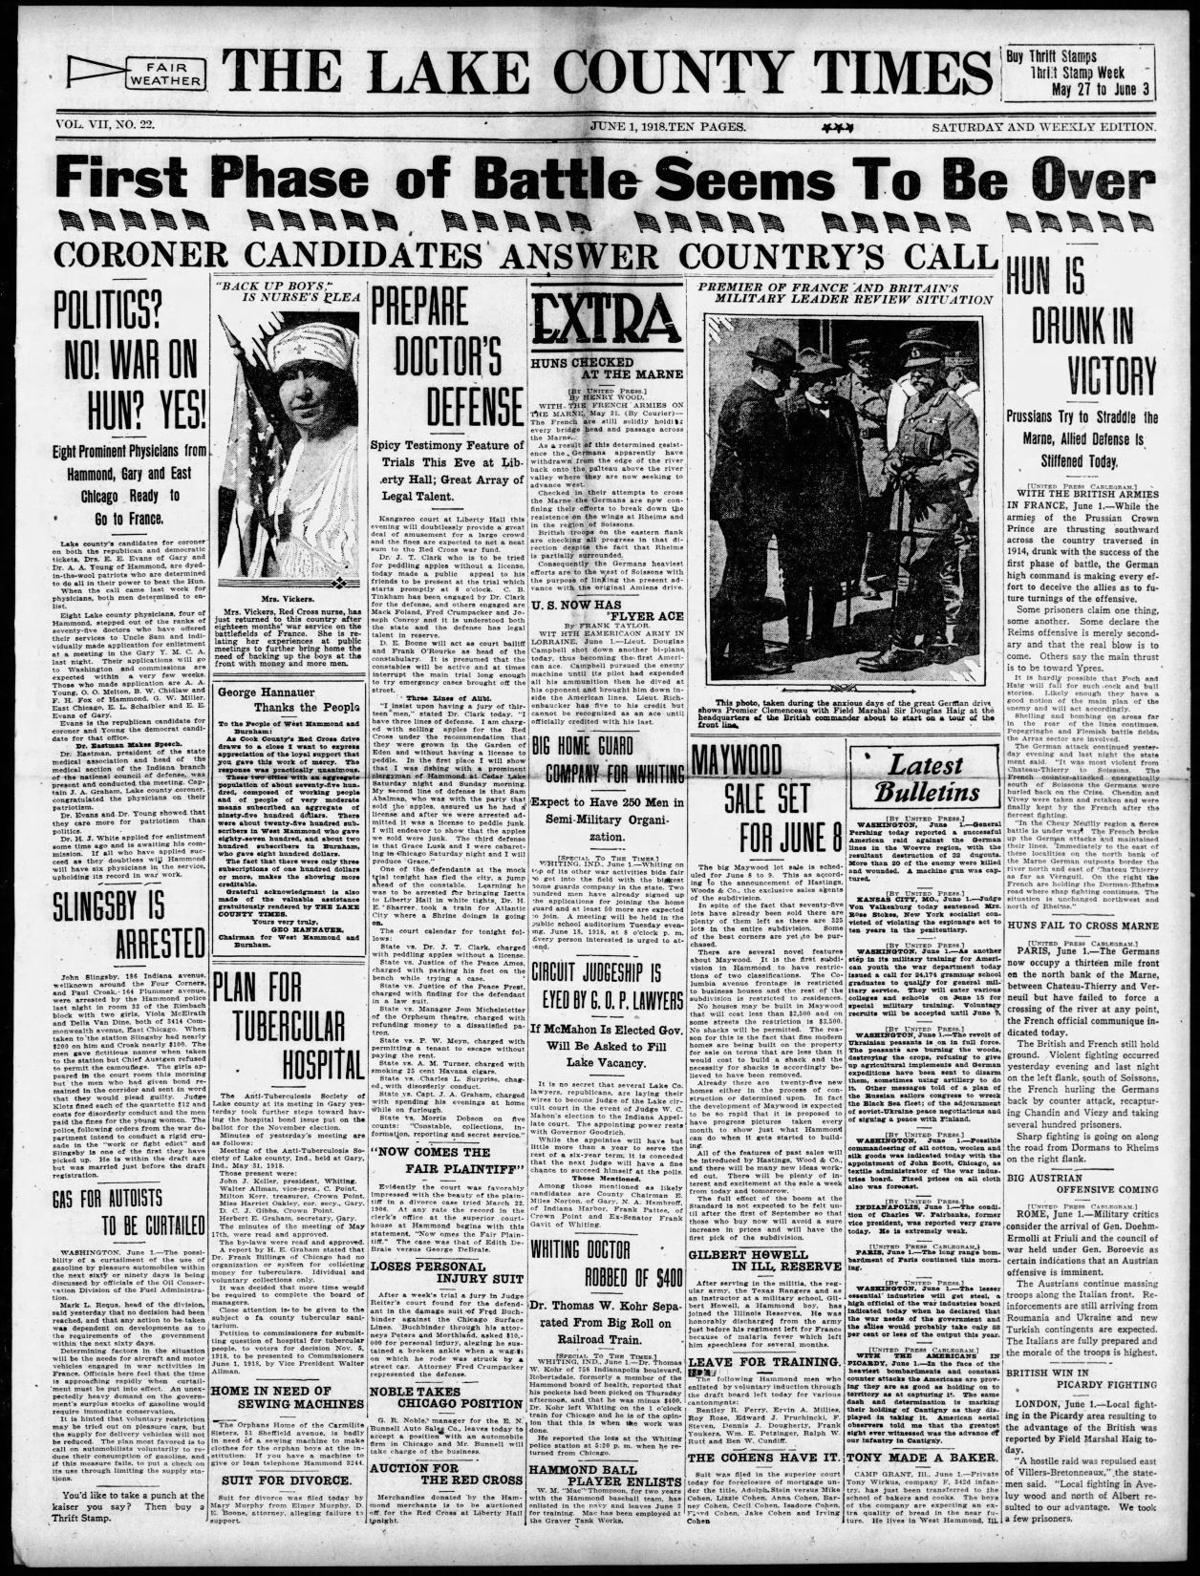 June 1, 1918: Coroner Candidates Answer Country's Call